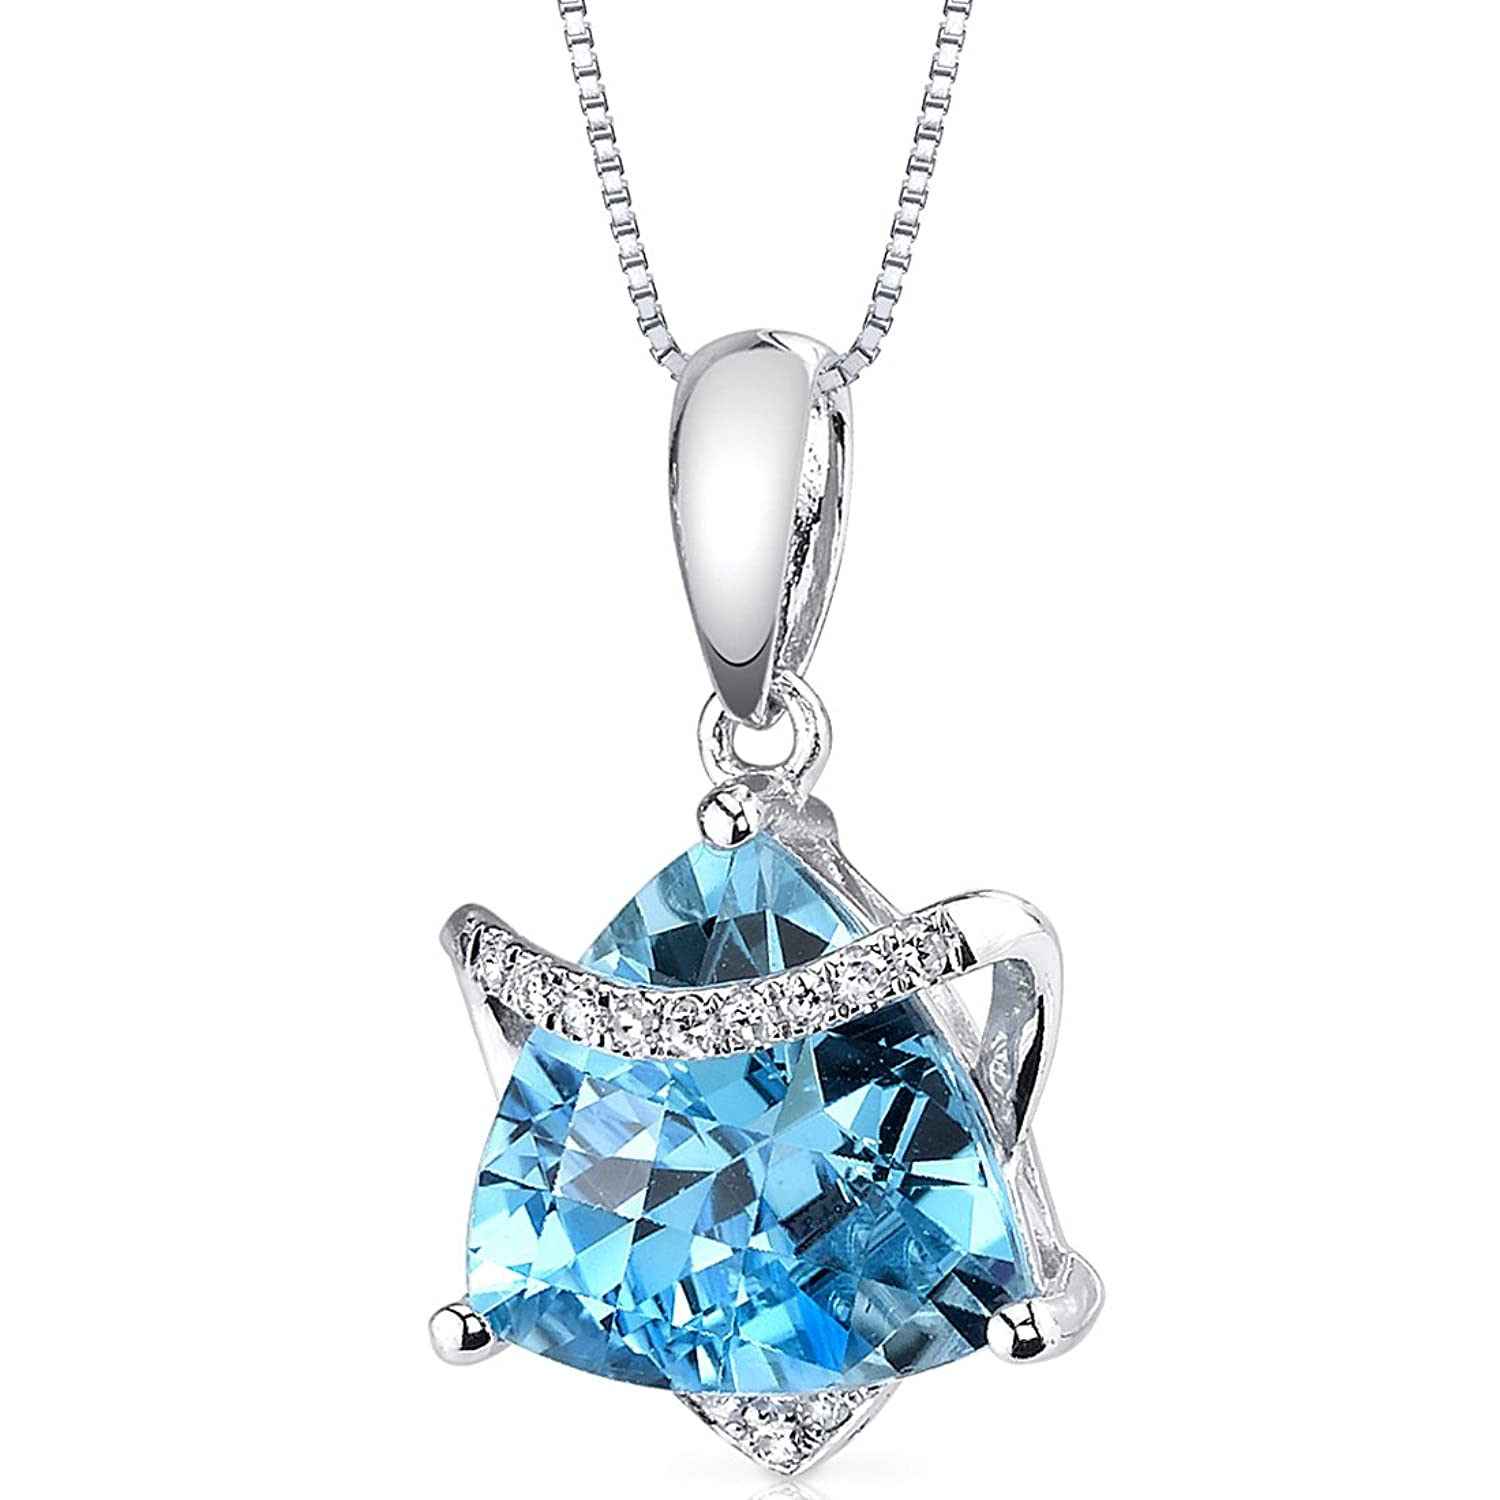 14 Karat White Gold Trillion Cut 2.65 carats Swiss Blue Topaz Diamond Pendant